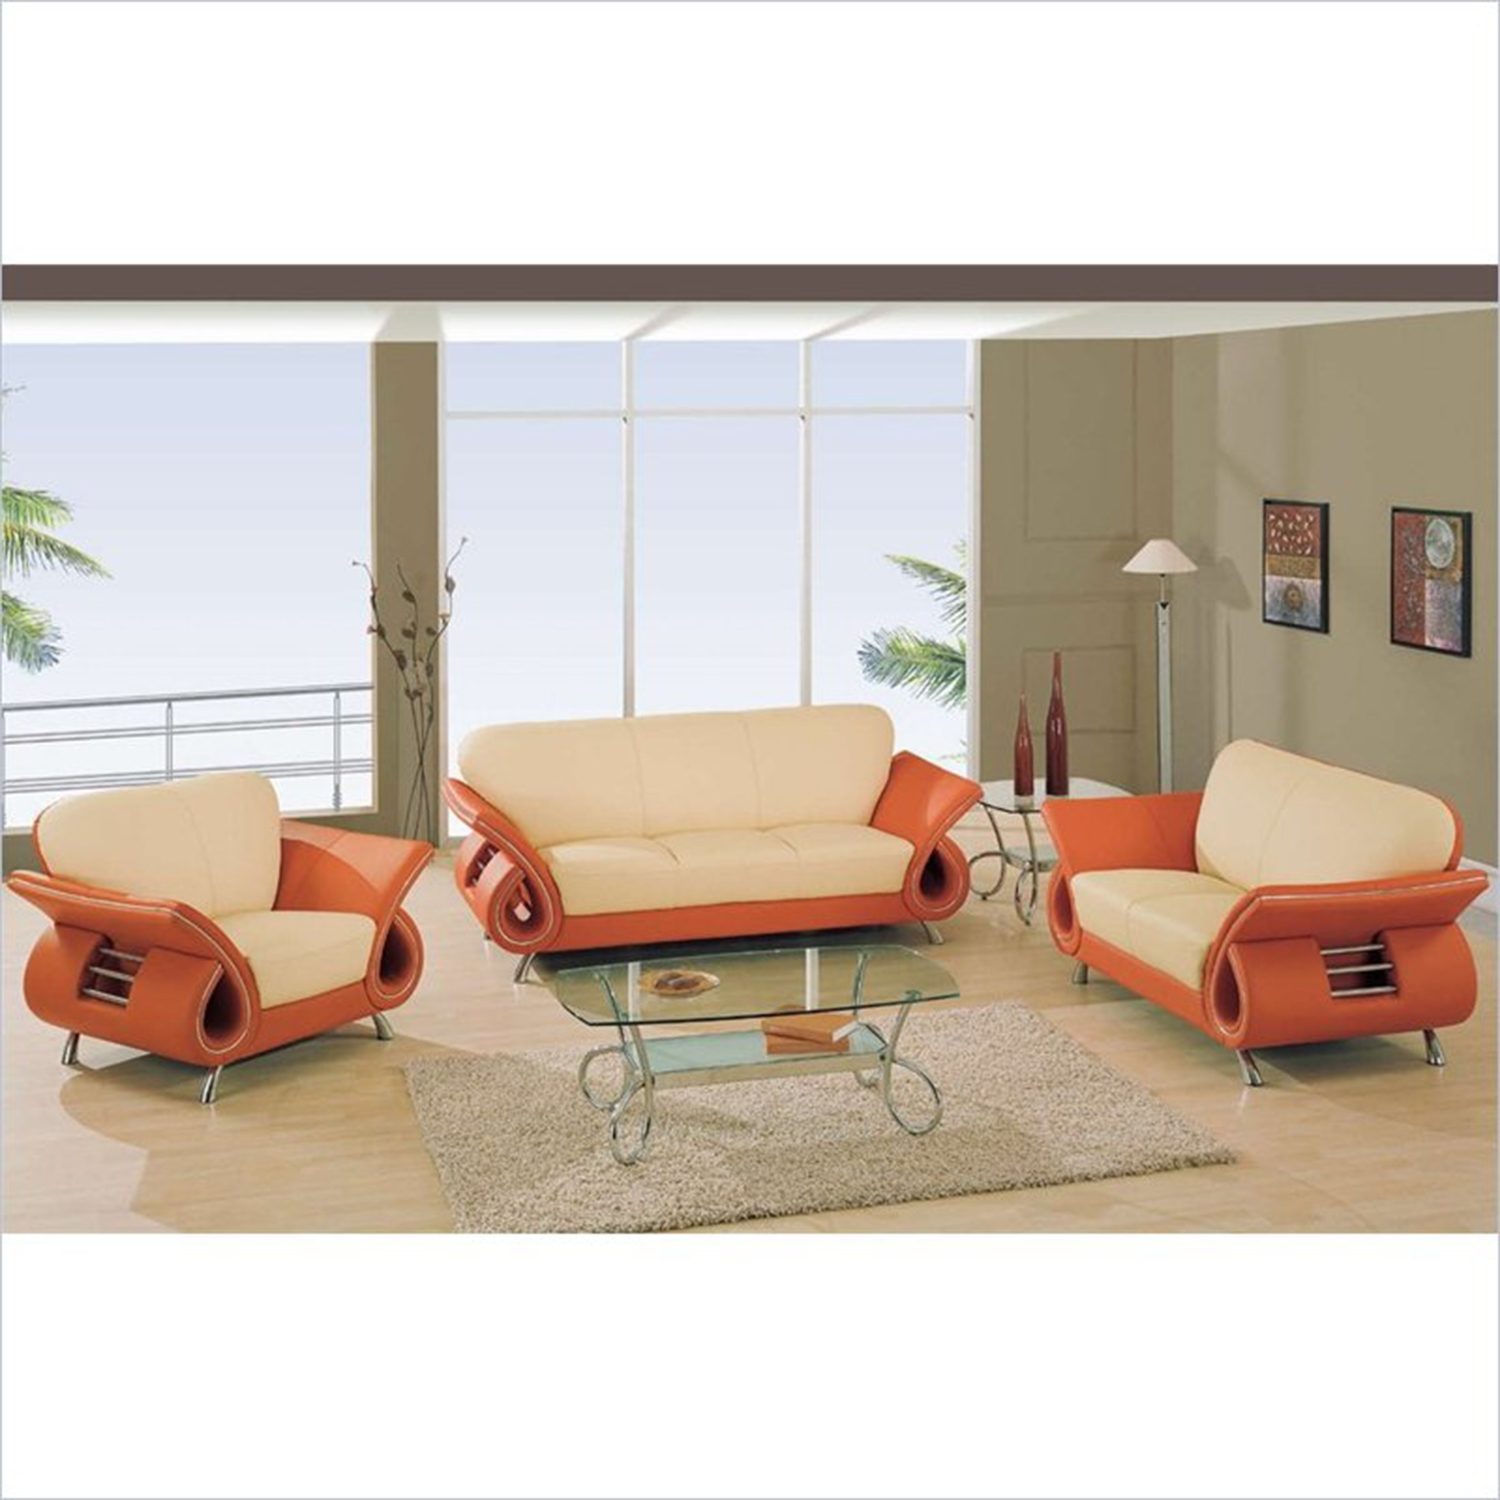 Wesley Leather Chair in Beige and Orange - GLO-U559-LV-CH